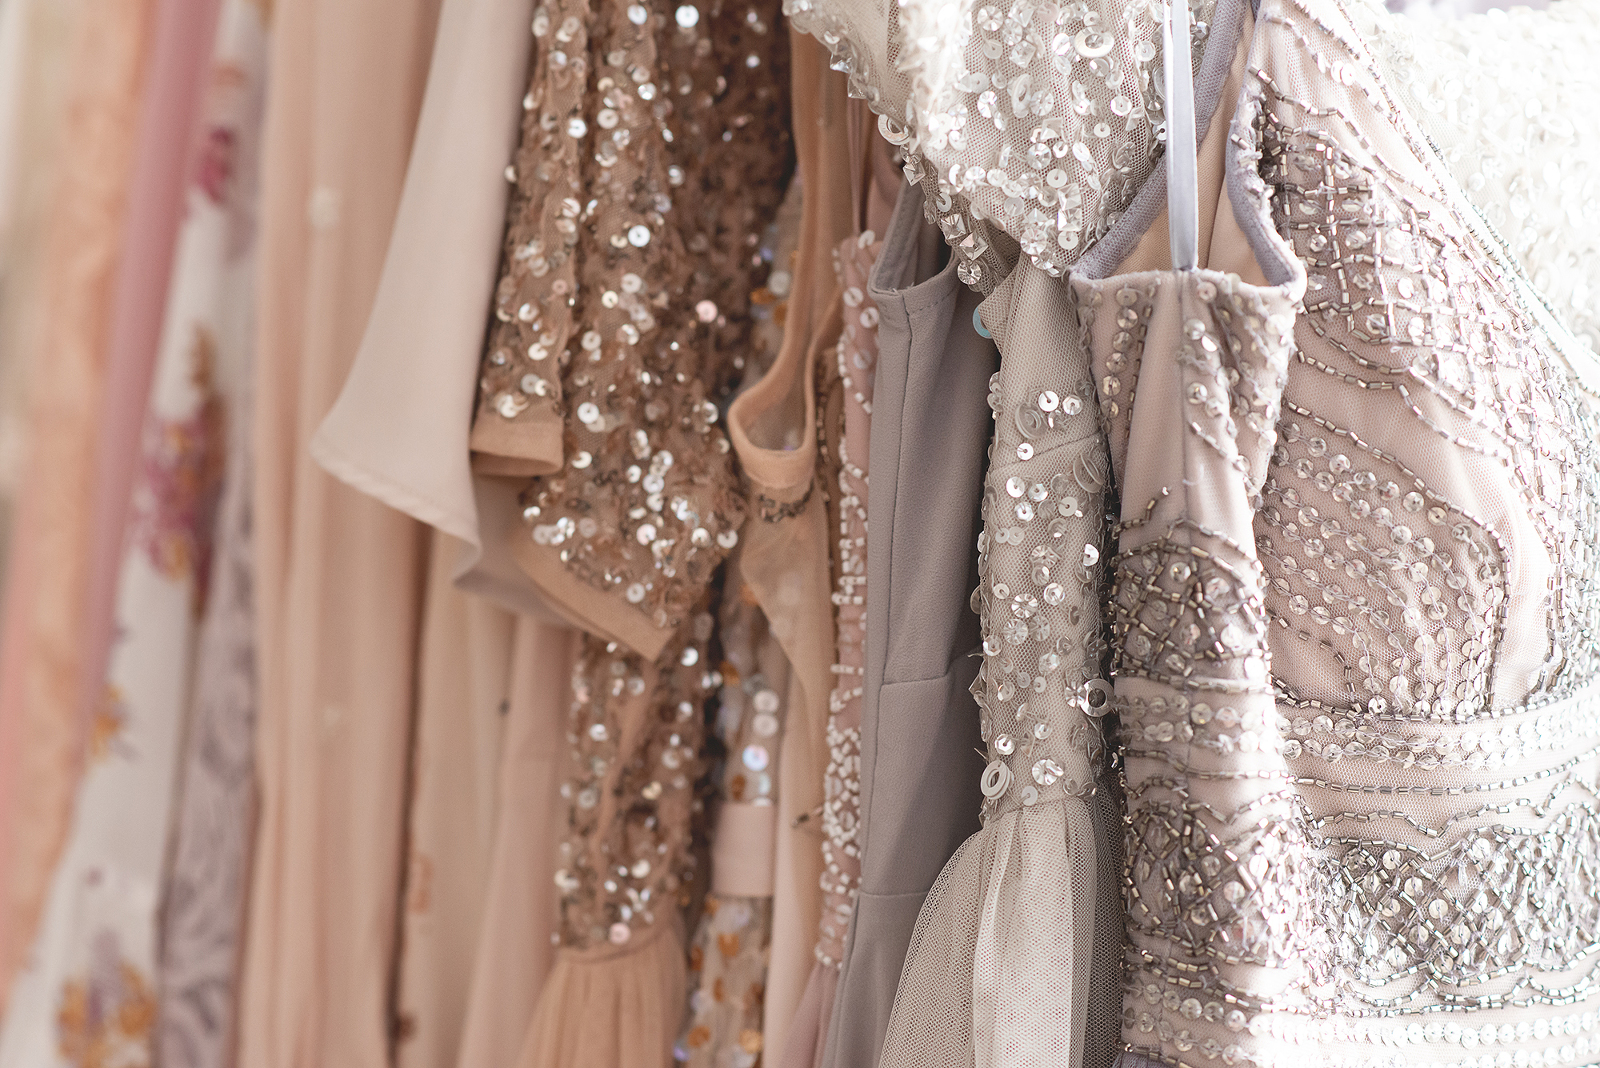 beads and sequins dress details client closet | Reaj Roberts Photography